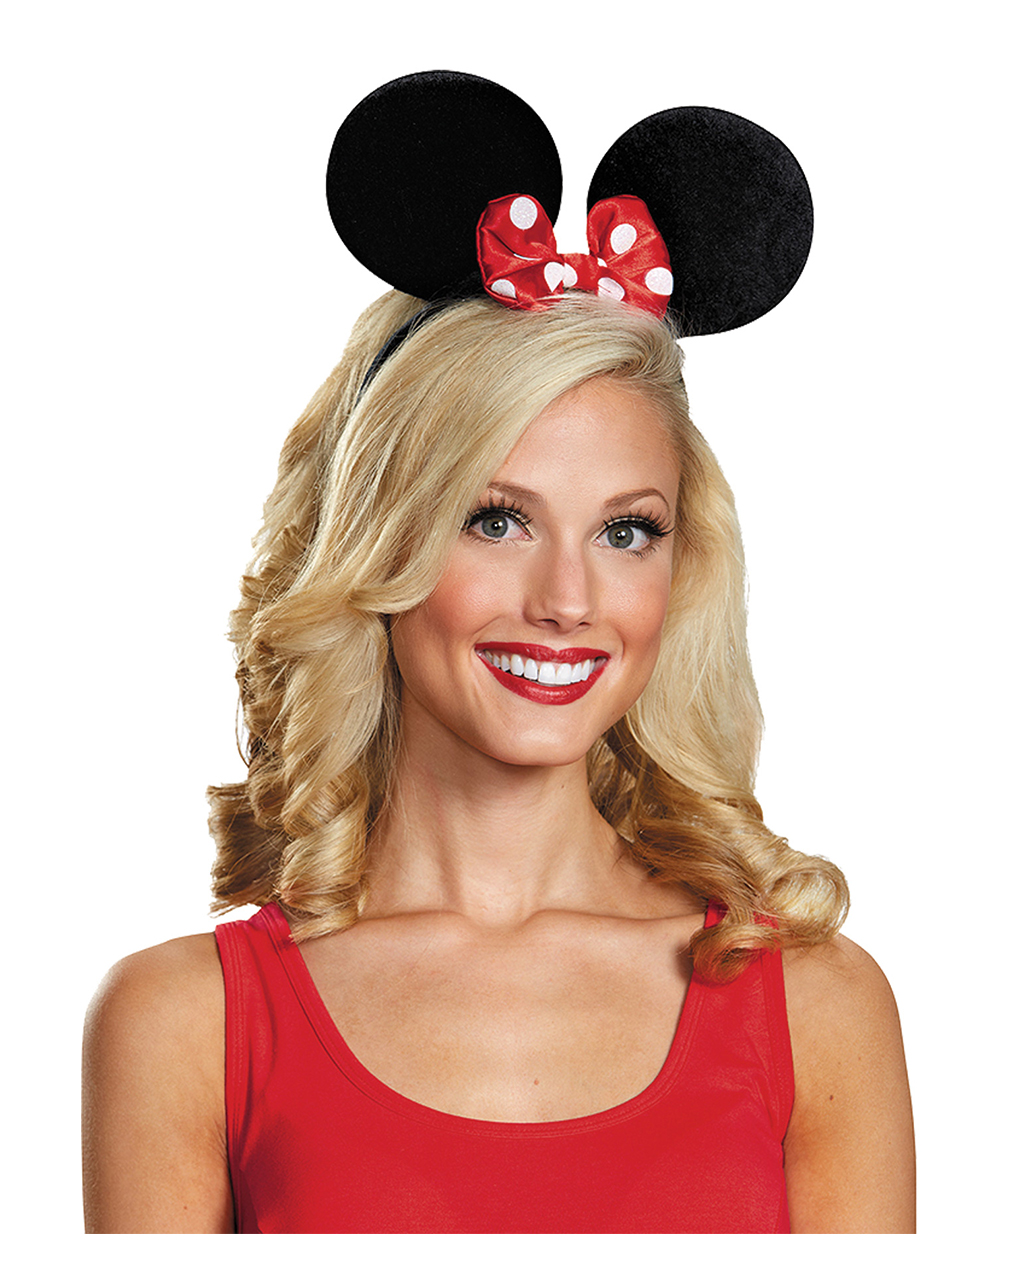 Minnie Mouse Ohren Fur Erwachsene Fur Fasching Horror Shop Com